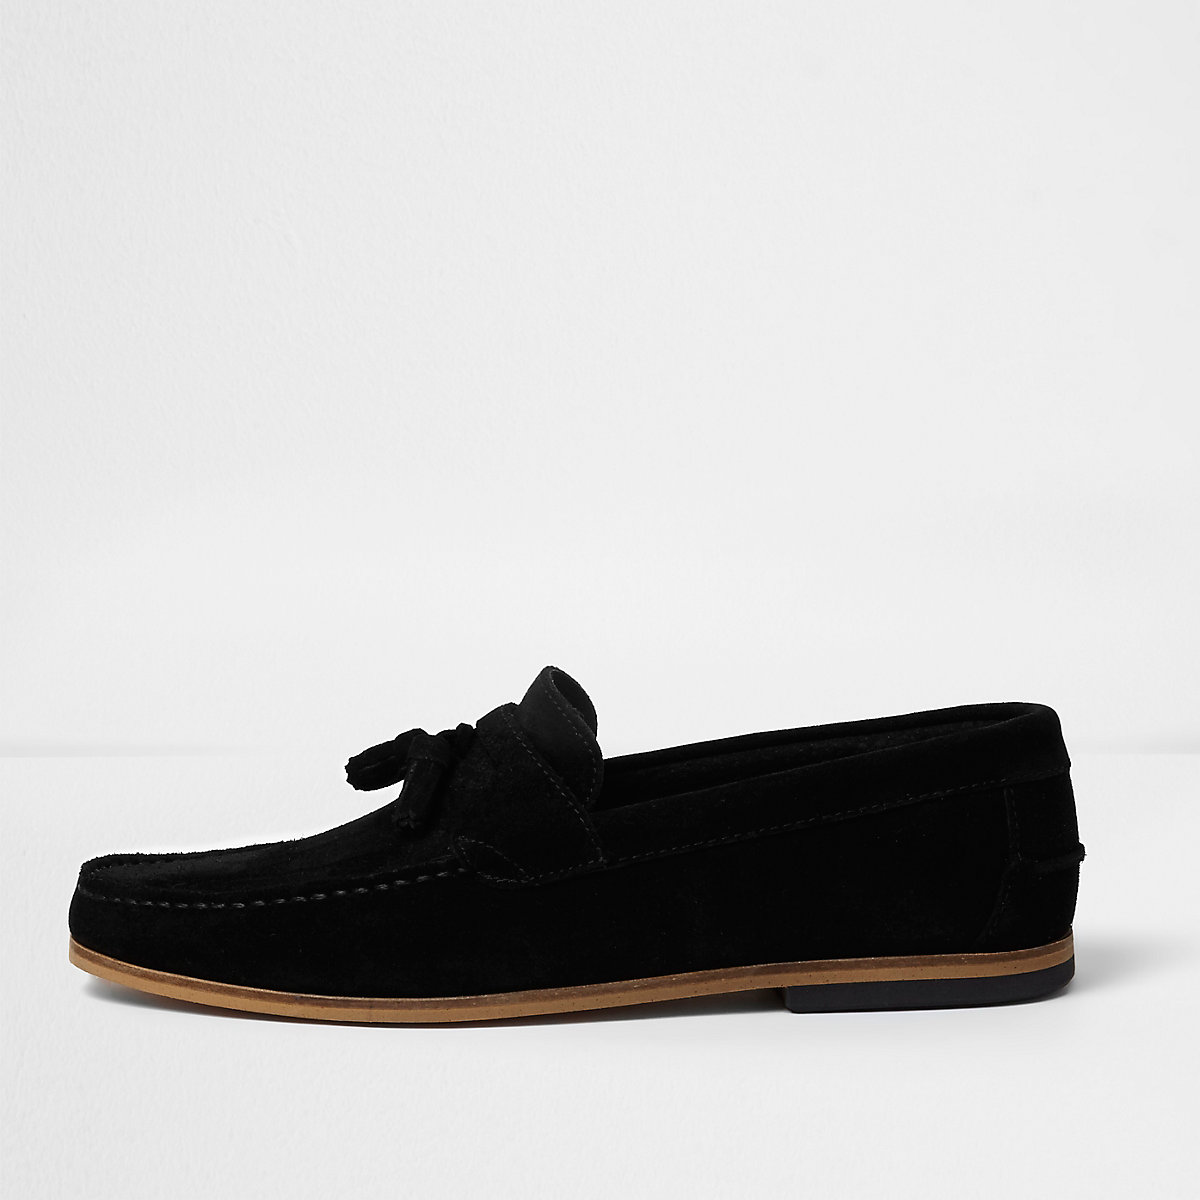 Black wide fit suede tassel loafers